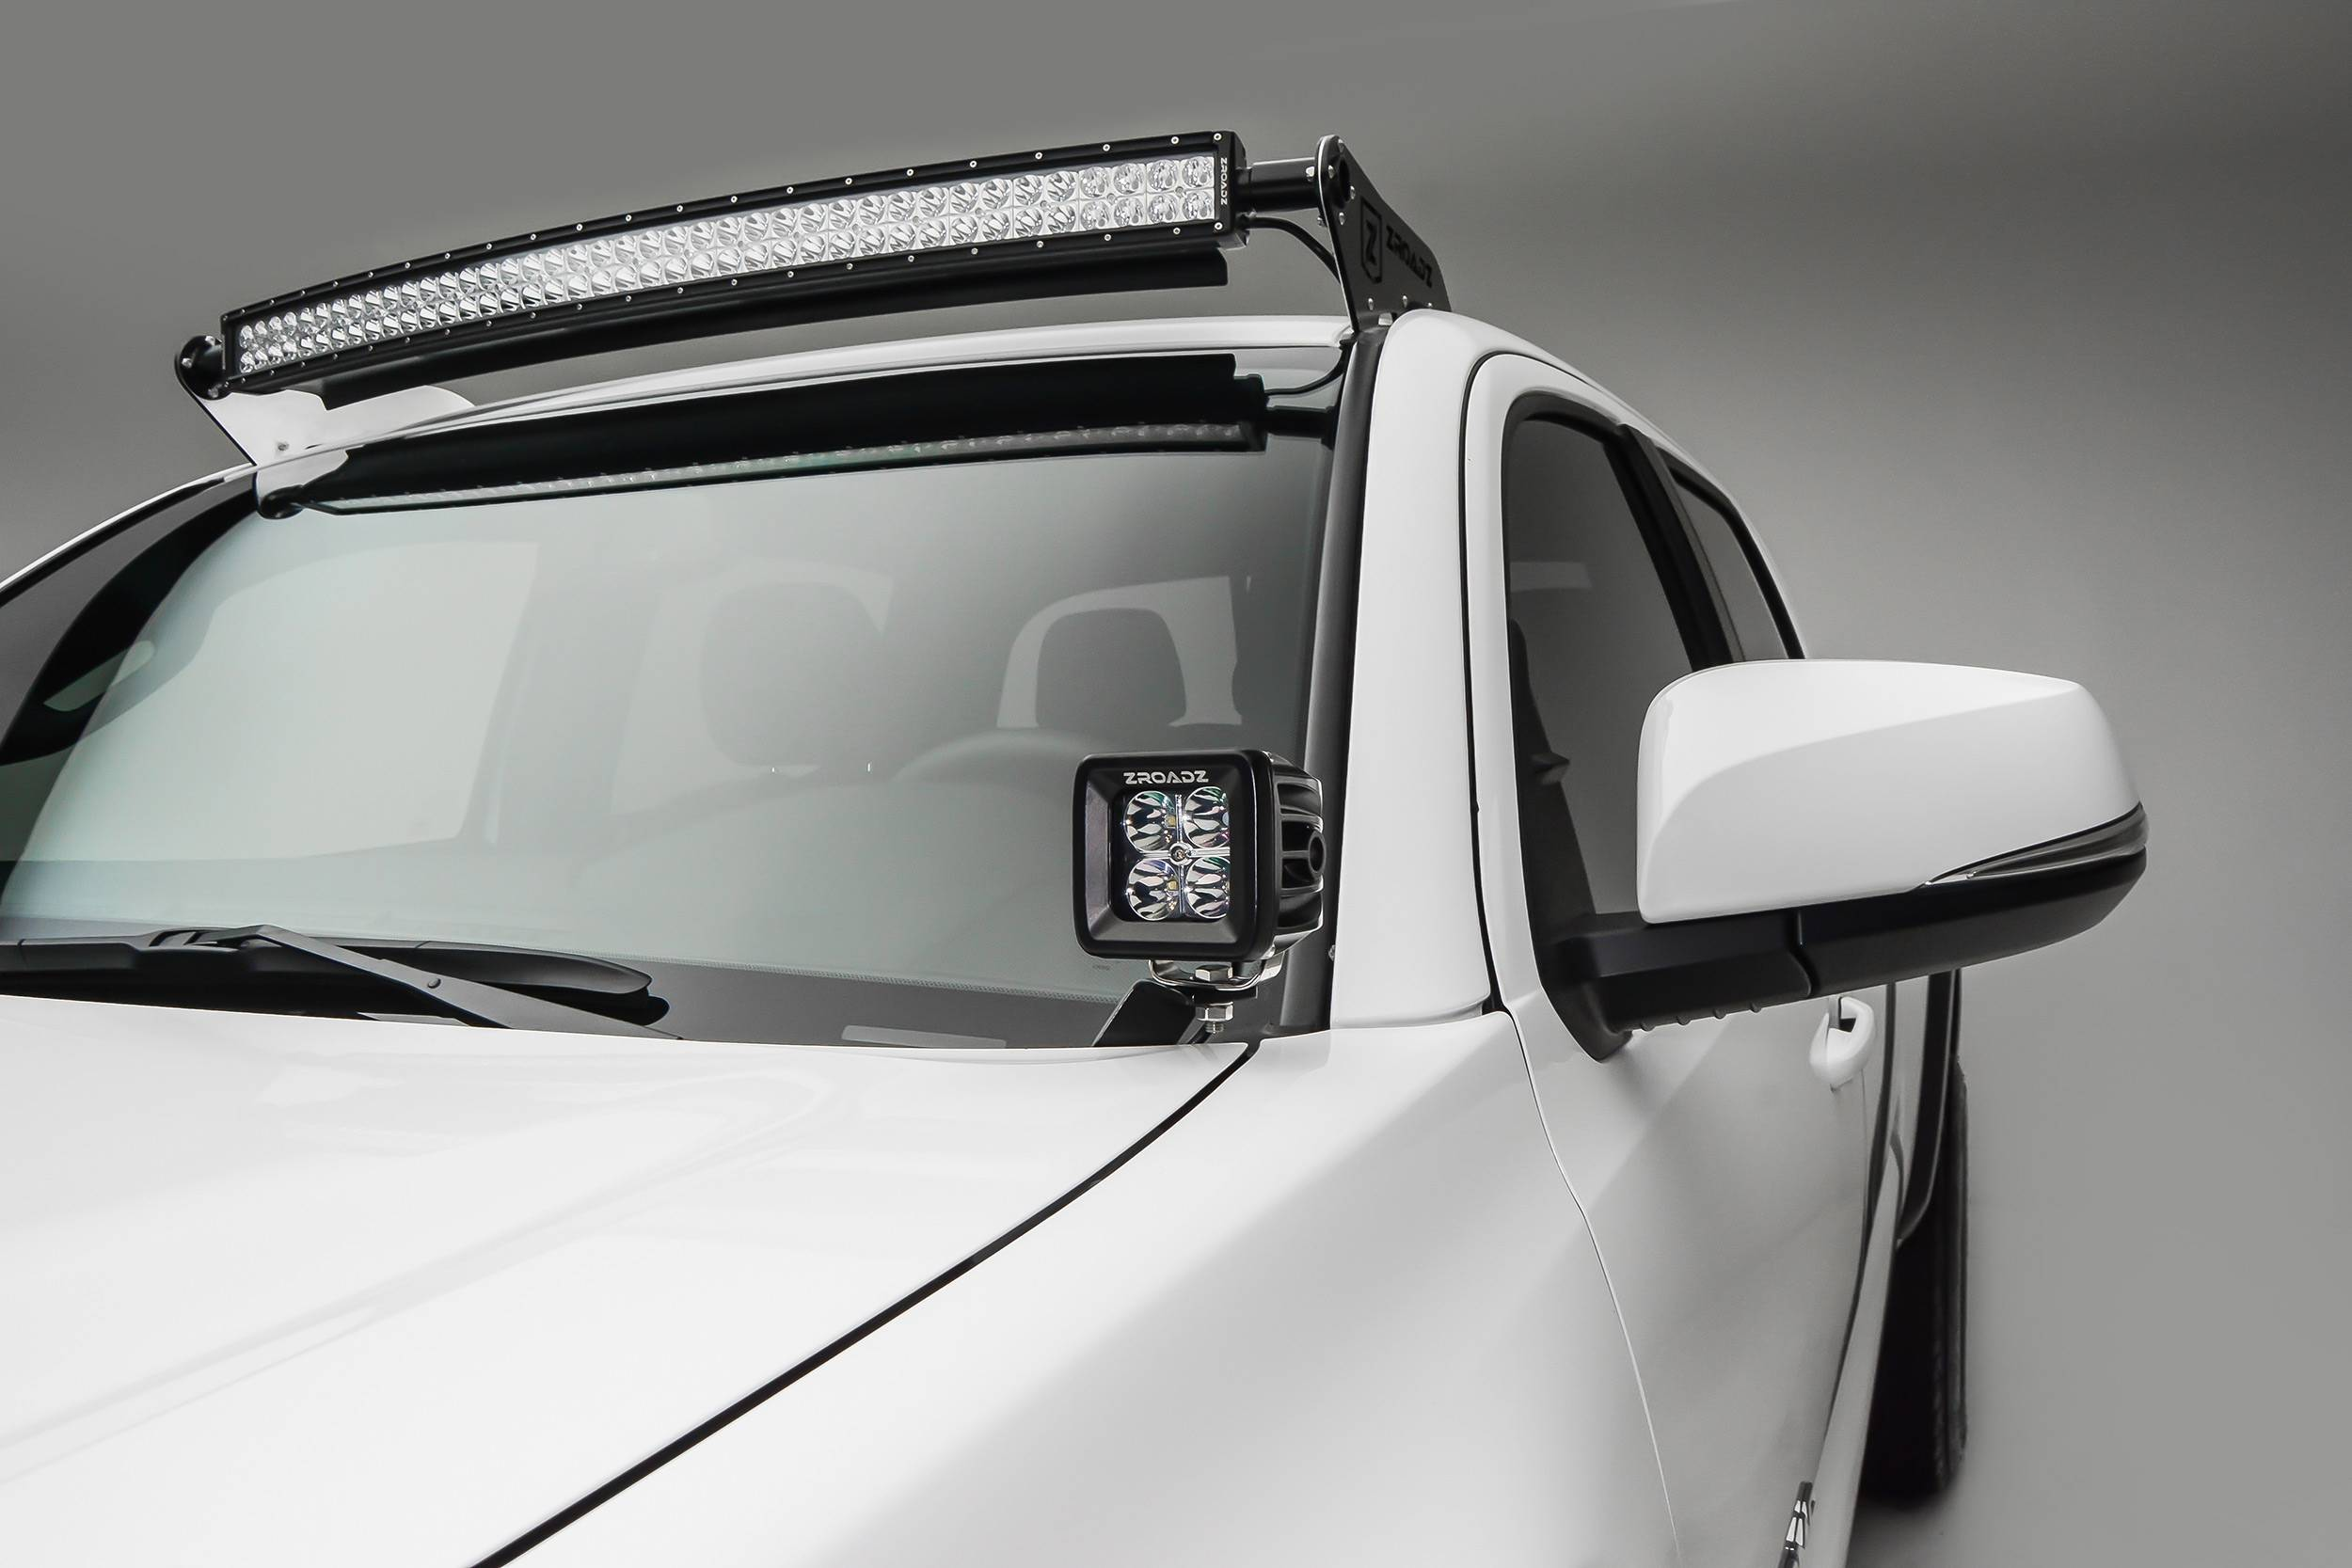 ZROADZ                                             - 2005-2021 Toyota Tacoma Front Roof LED Kit with 40 Inch LED Curved Double Row Light Bar - PN #Z339401-KIT-C